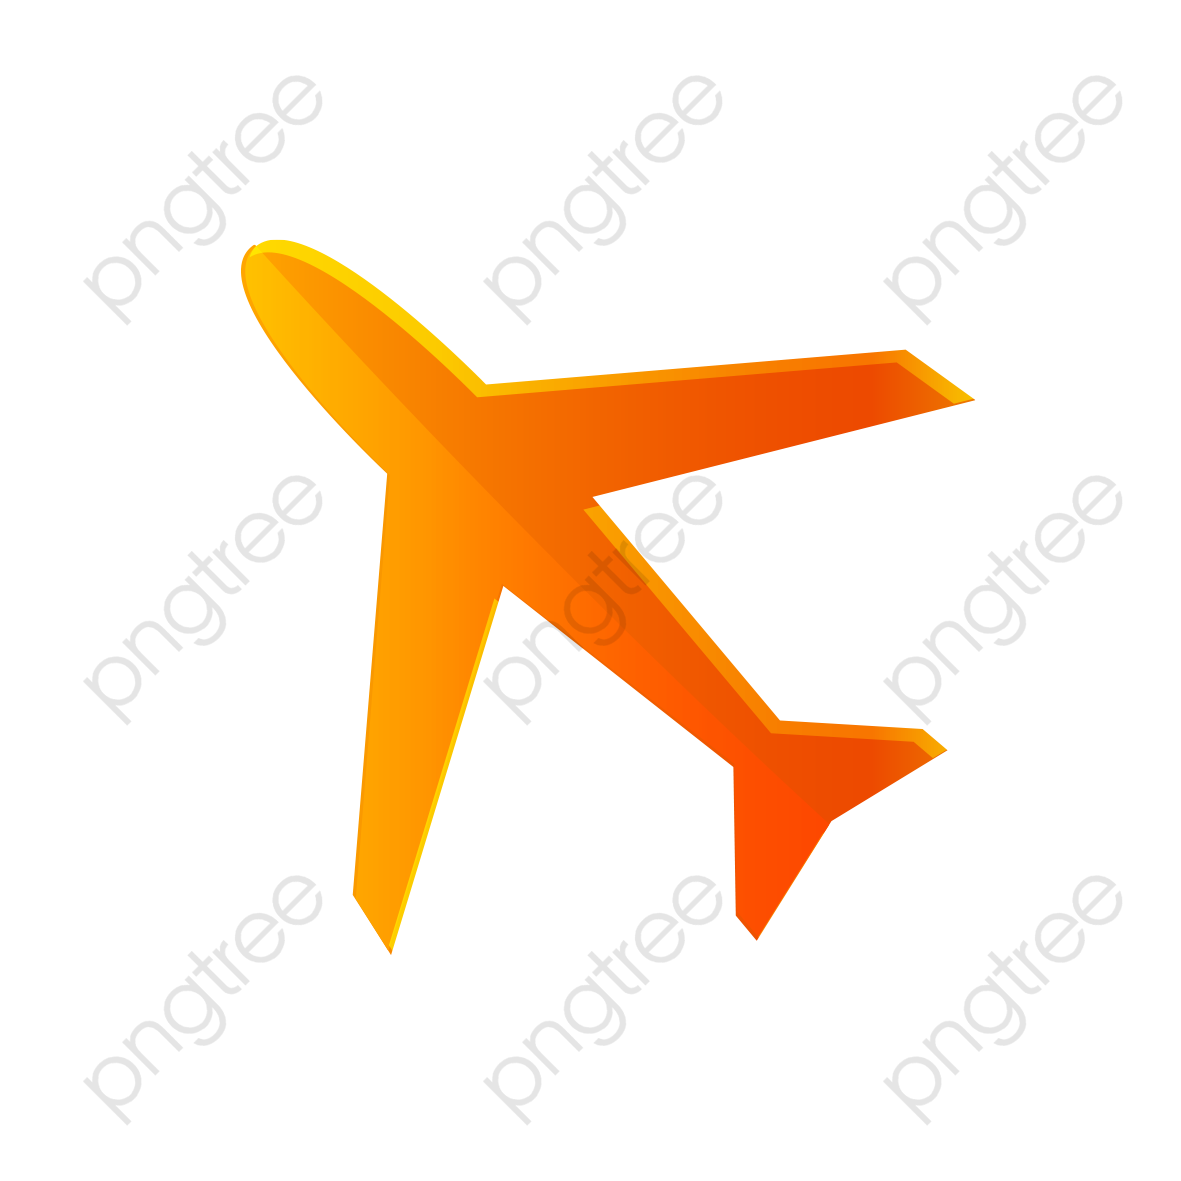 Link clipart airline Transparent pictures on F.